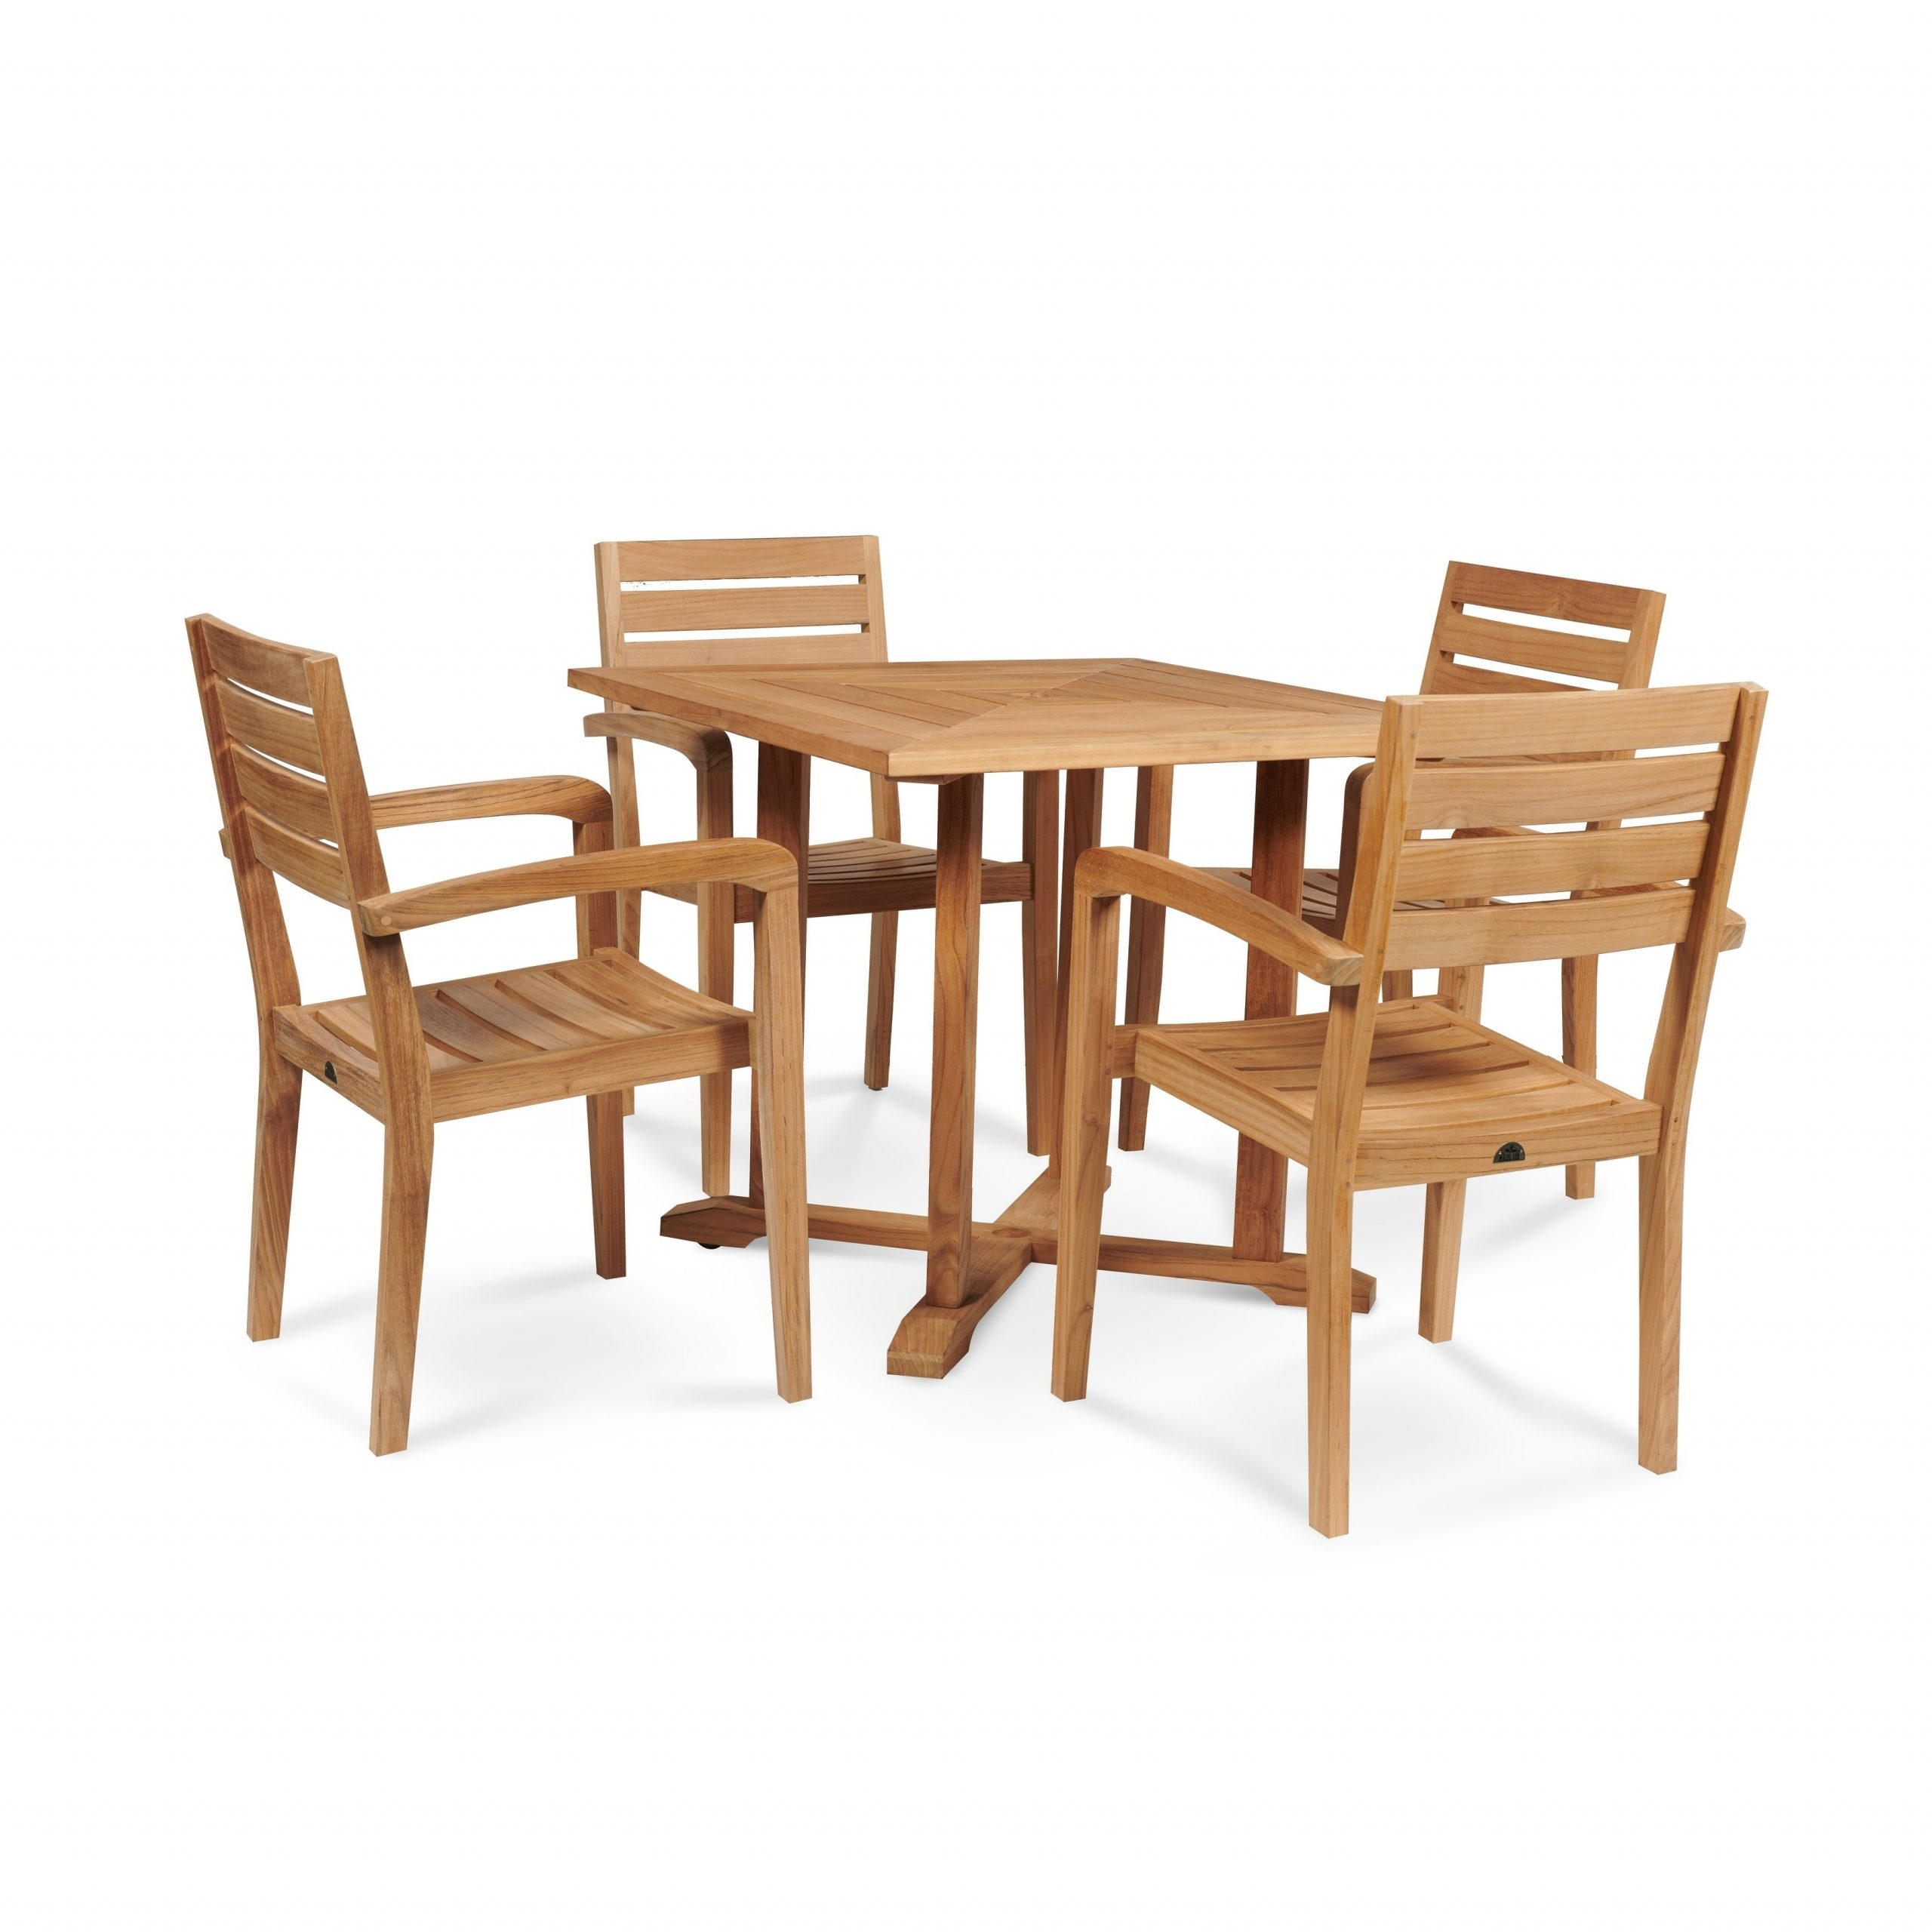 Avery Outdoor Square Teak Dining Table Pertaining To Fashionable Avery Rectangular Dining Tables (View 23 of 25)